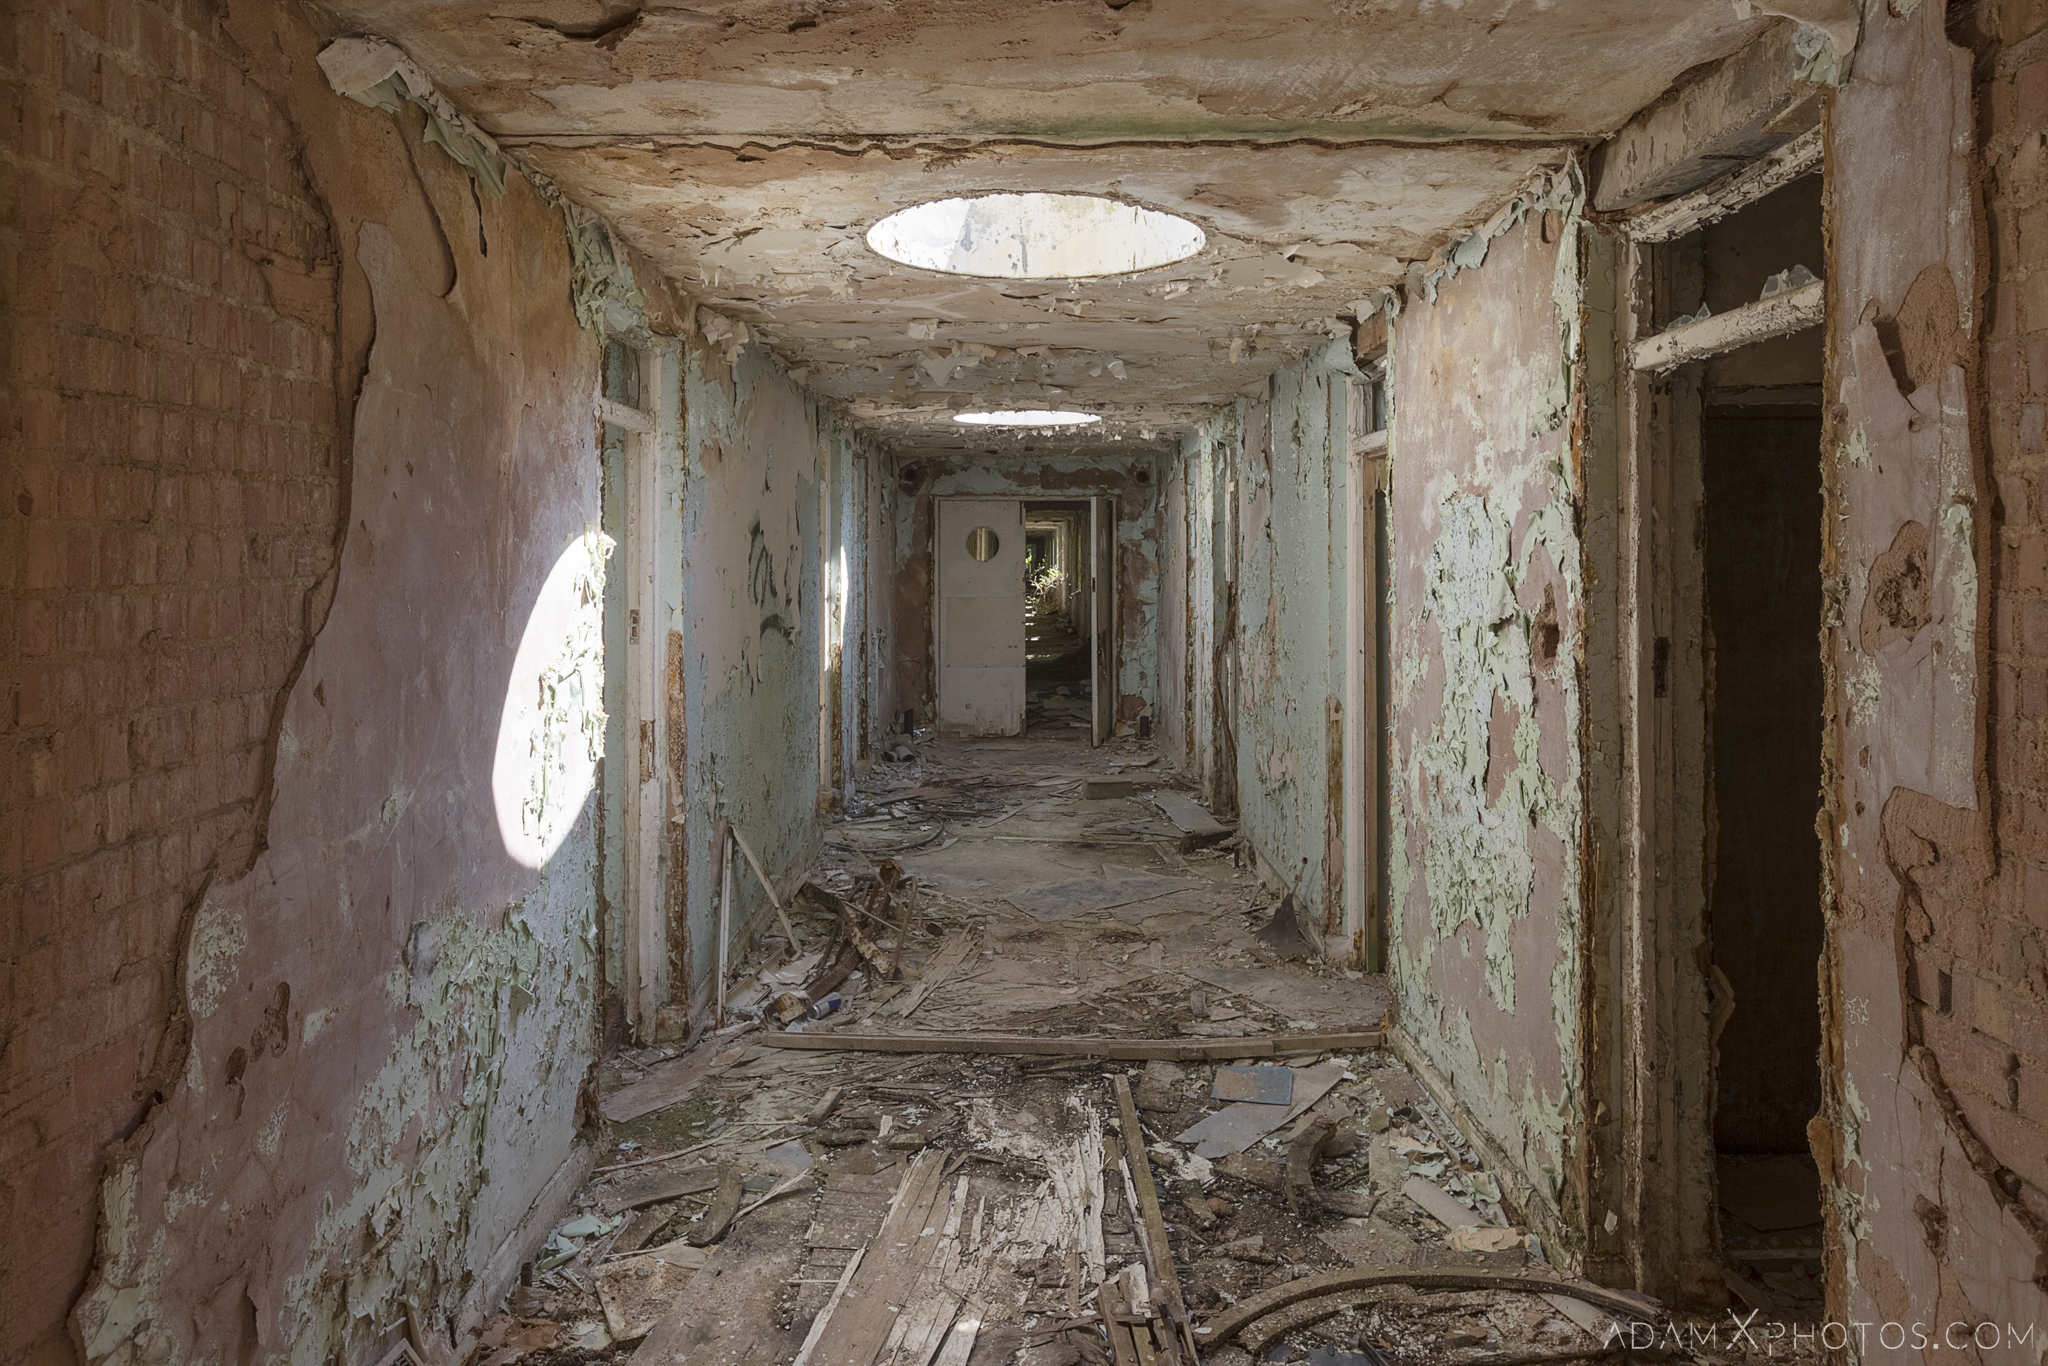 hallway corridor skylight peeling paint Nocton Hall RAF Hospital Lincolnshire Adam X Urbex Urban Exploration Access 2018 Abandoned decay lost forgotten derelict location creepy haunting eerie